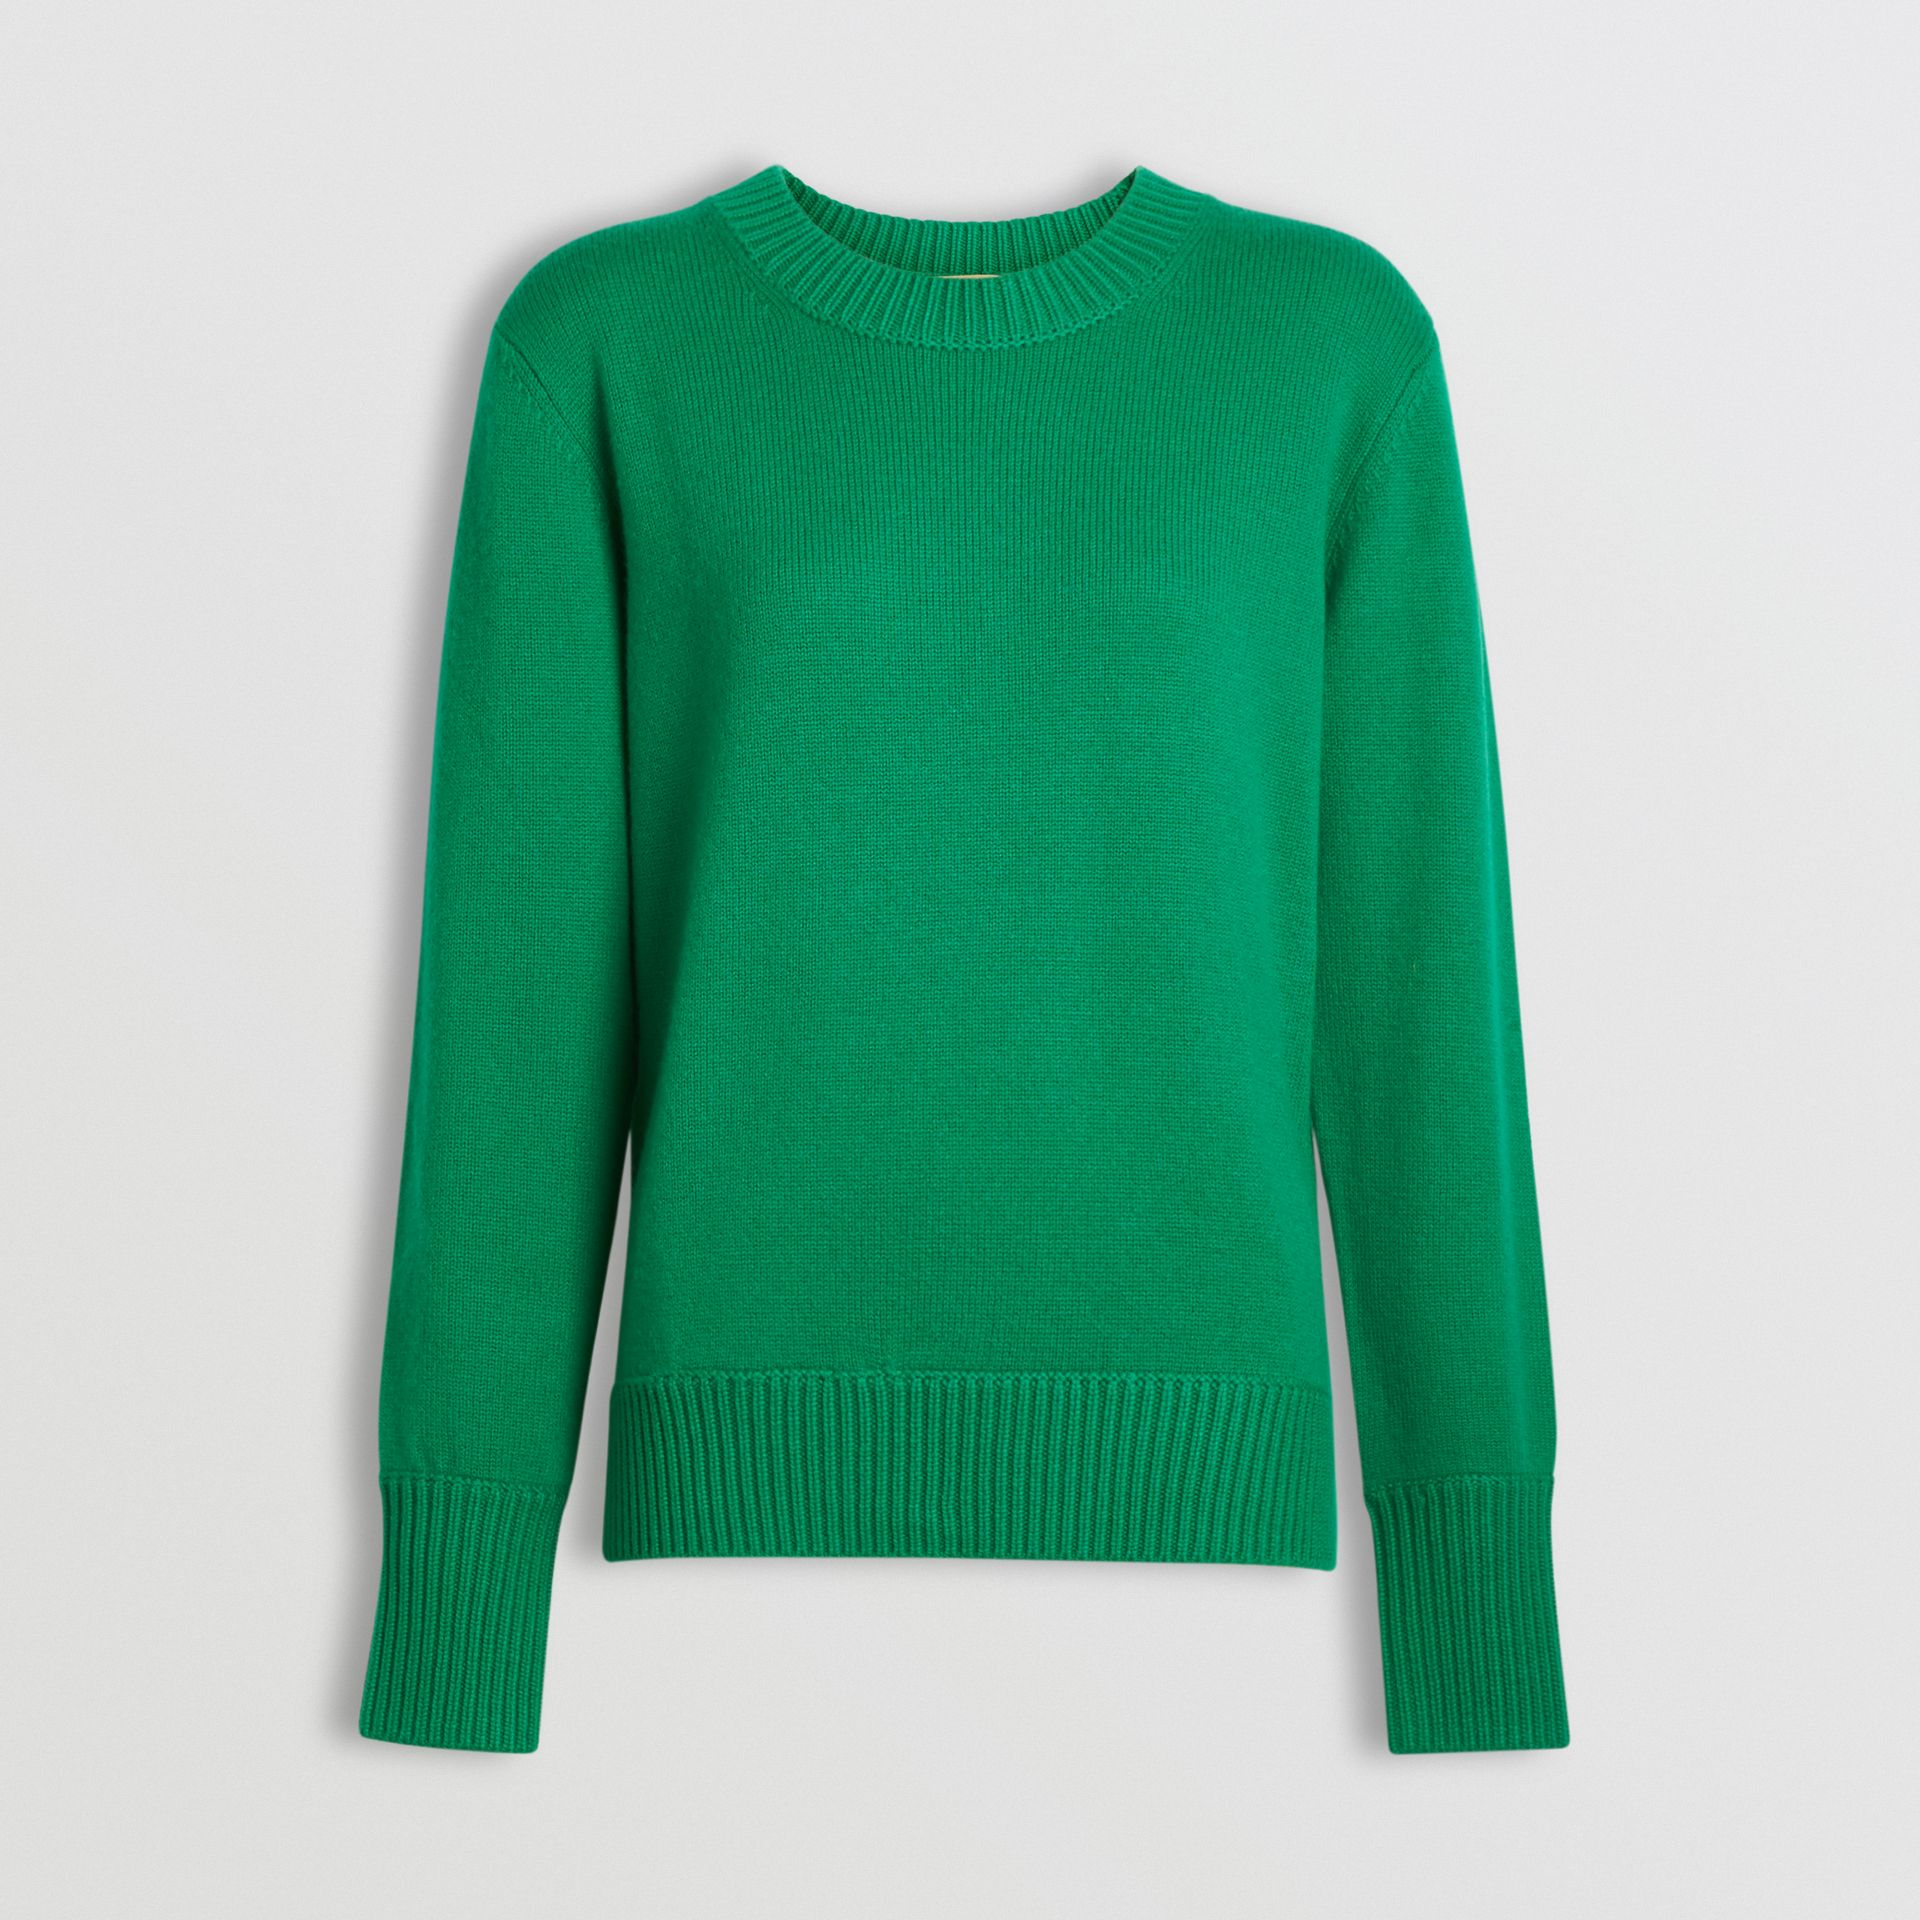 Archive Logo Appliqué Cashmere Sweater in Vibrant Green - Women | Burberry Hong Kong - gallery image 3